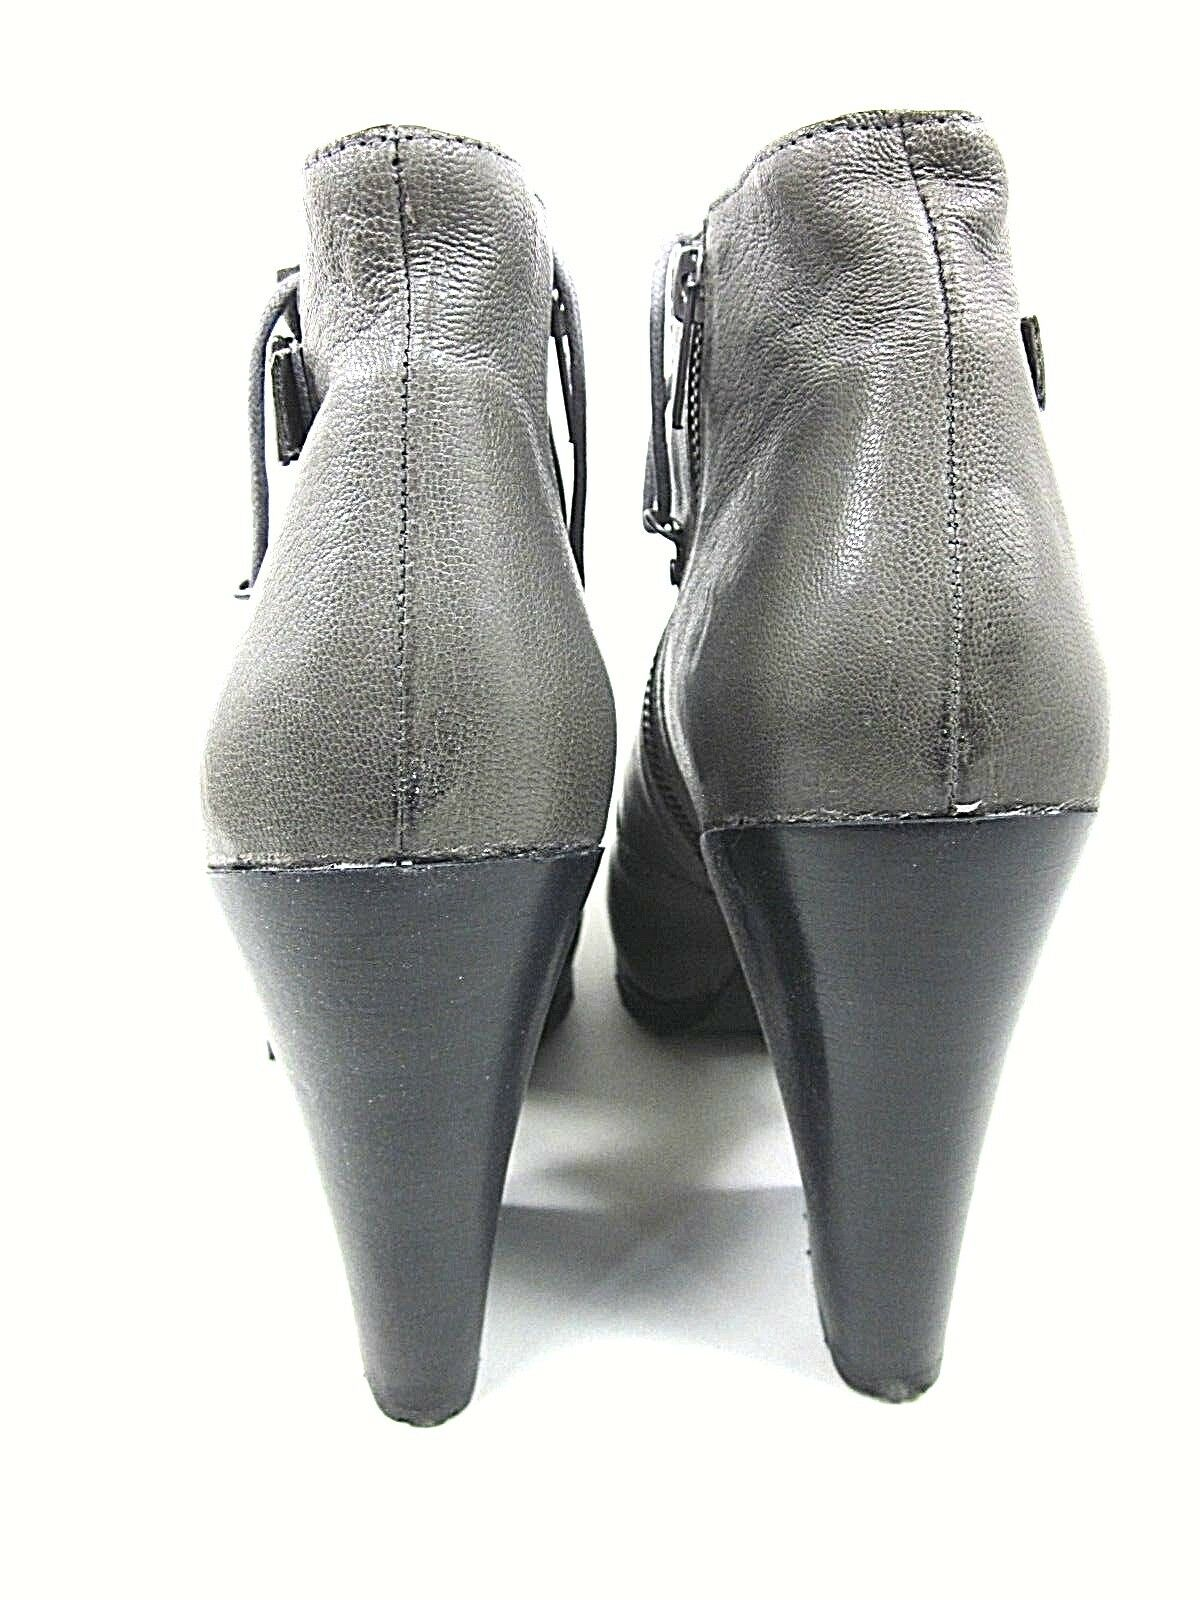 BACIO61 PESANTI ANKLE US BOOT WOMEN'S DUST GREY US ANKLE SIZE 10M NEW WITHOUT BOX 7a47dc